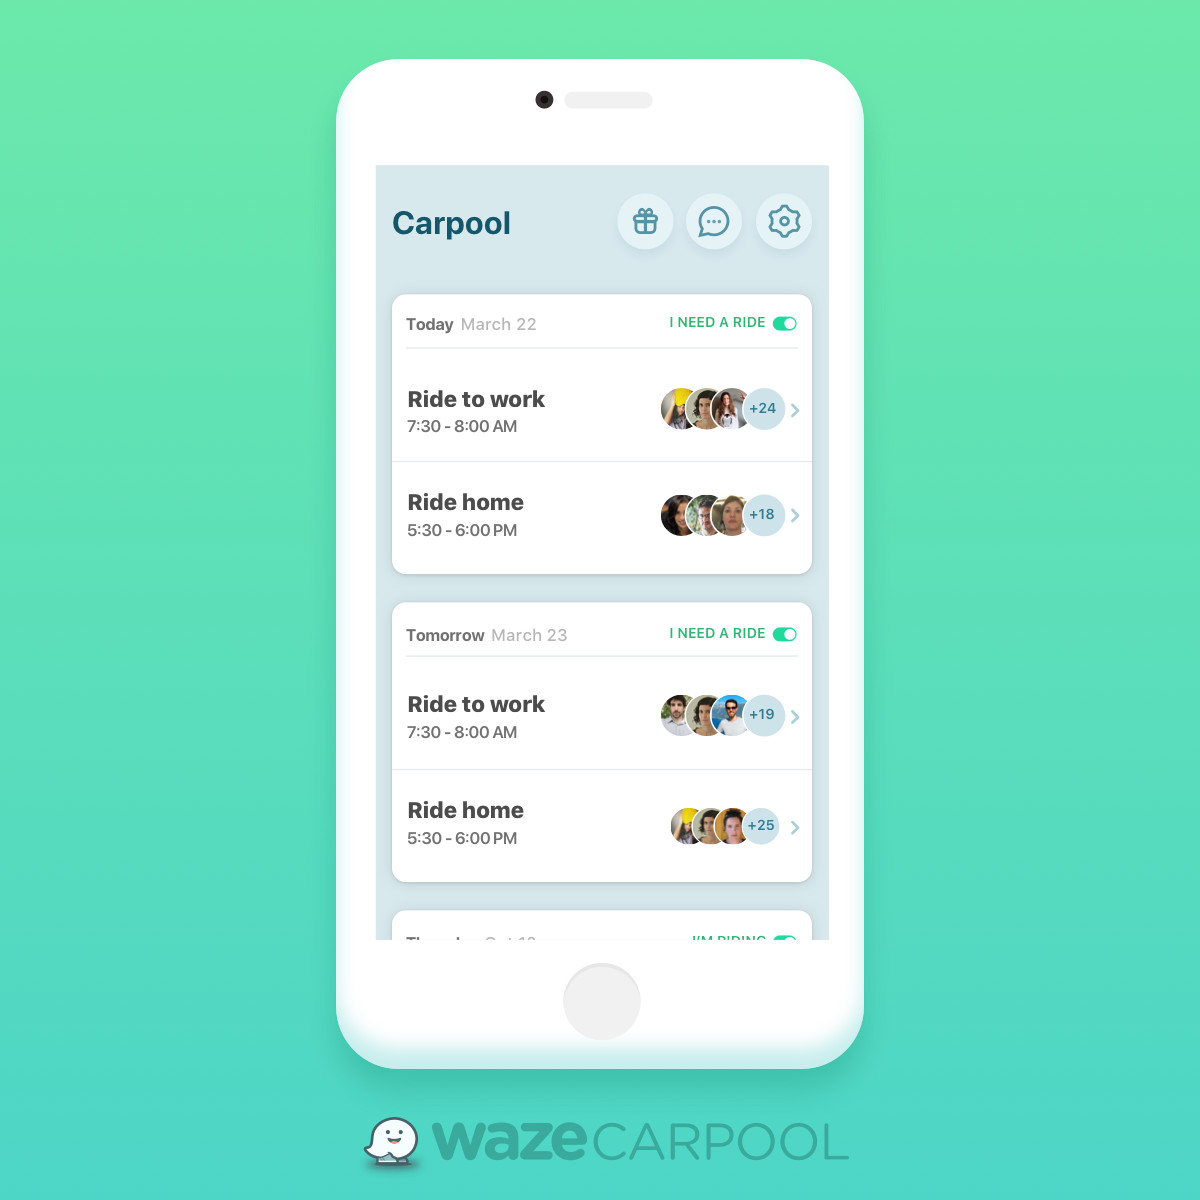 Waze rolls out carpool matchmaking in Washington State